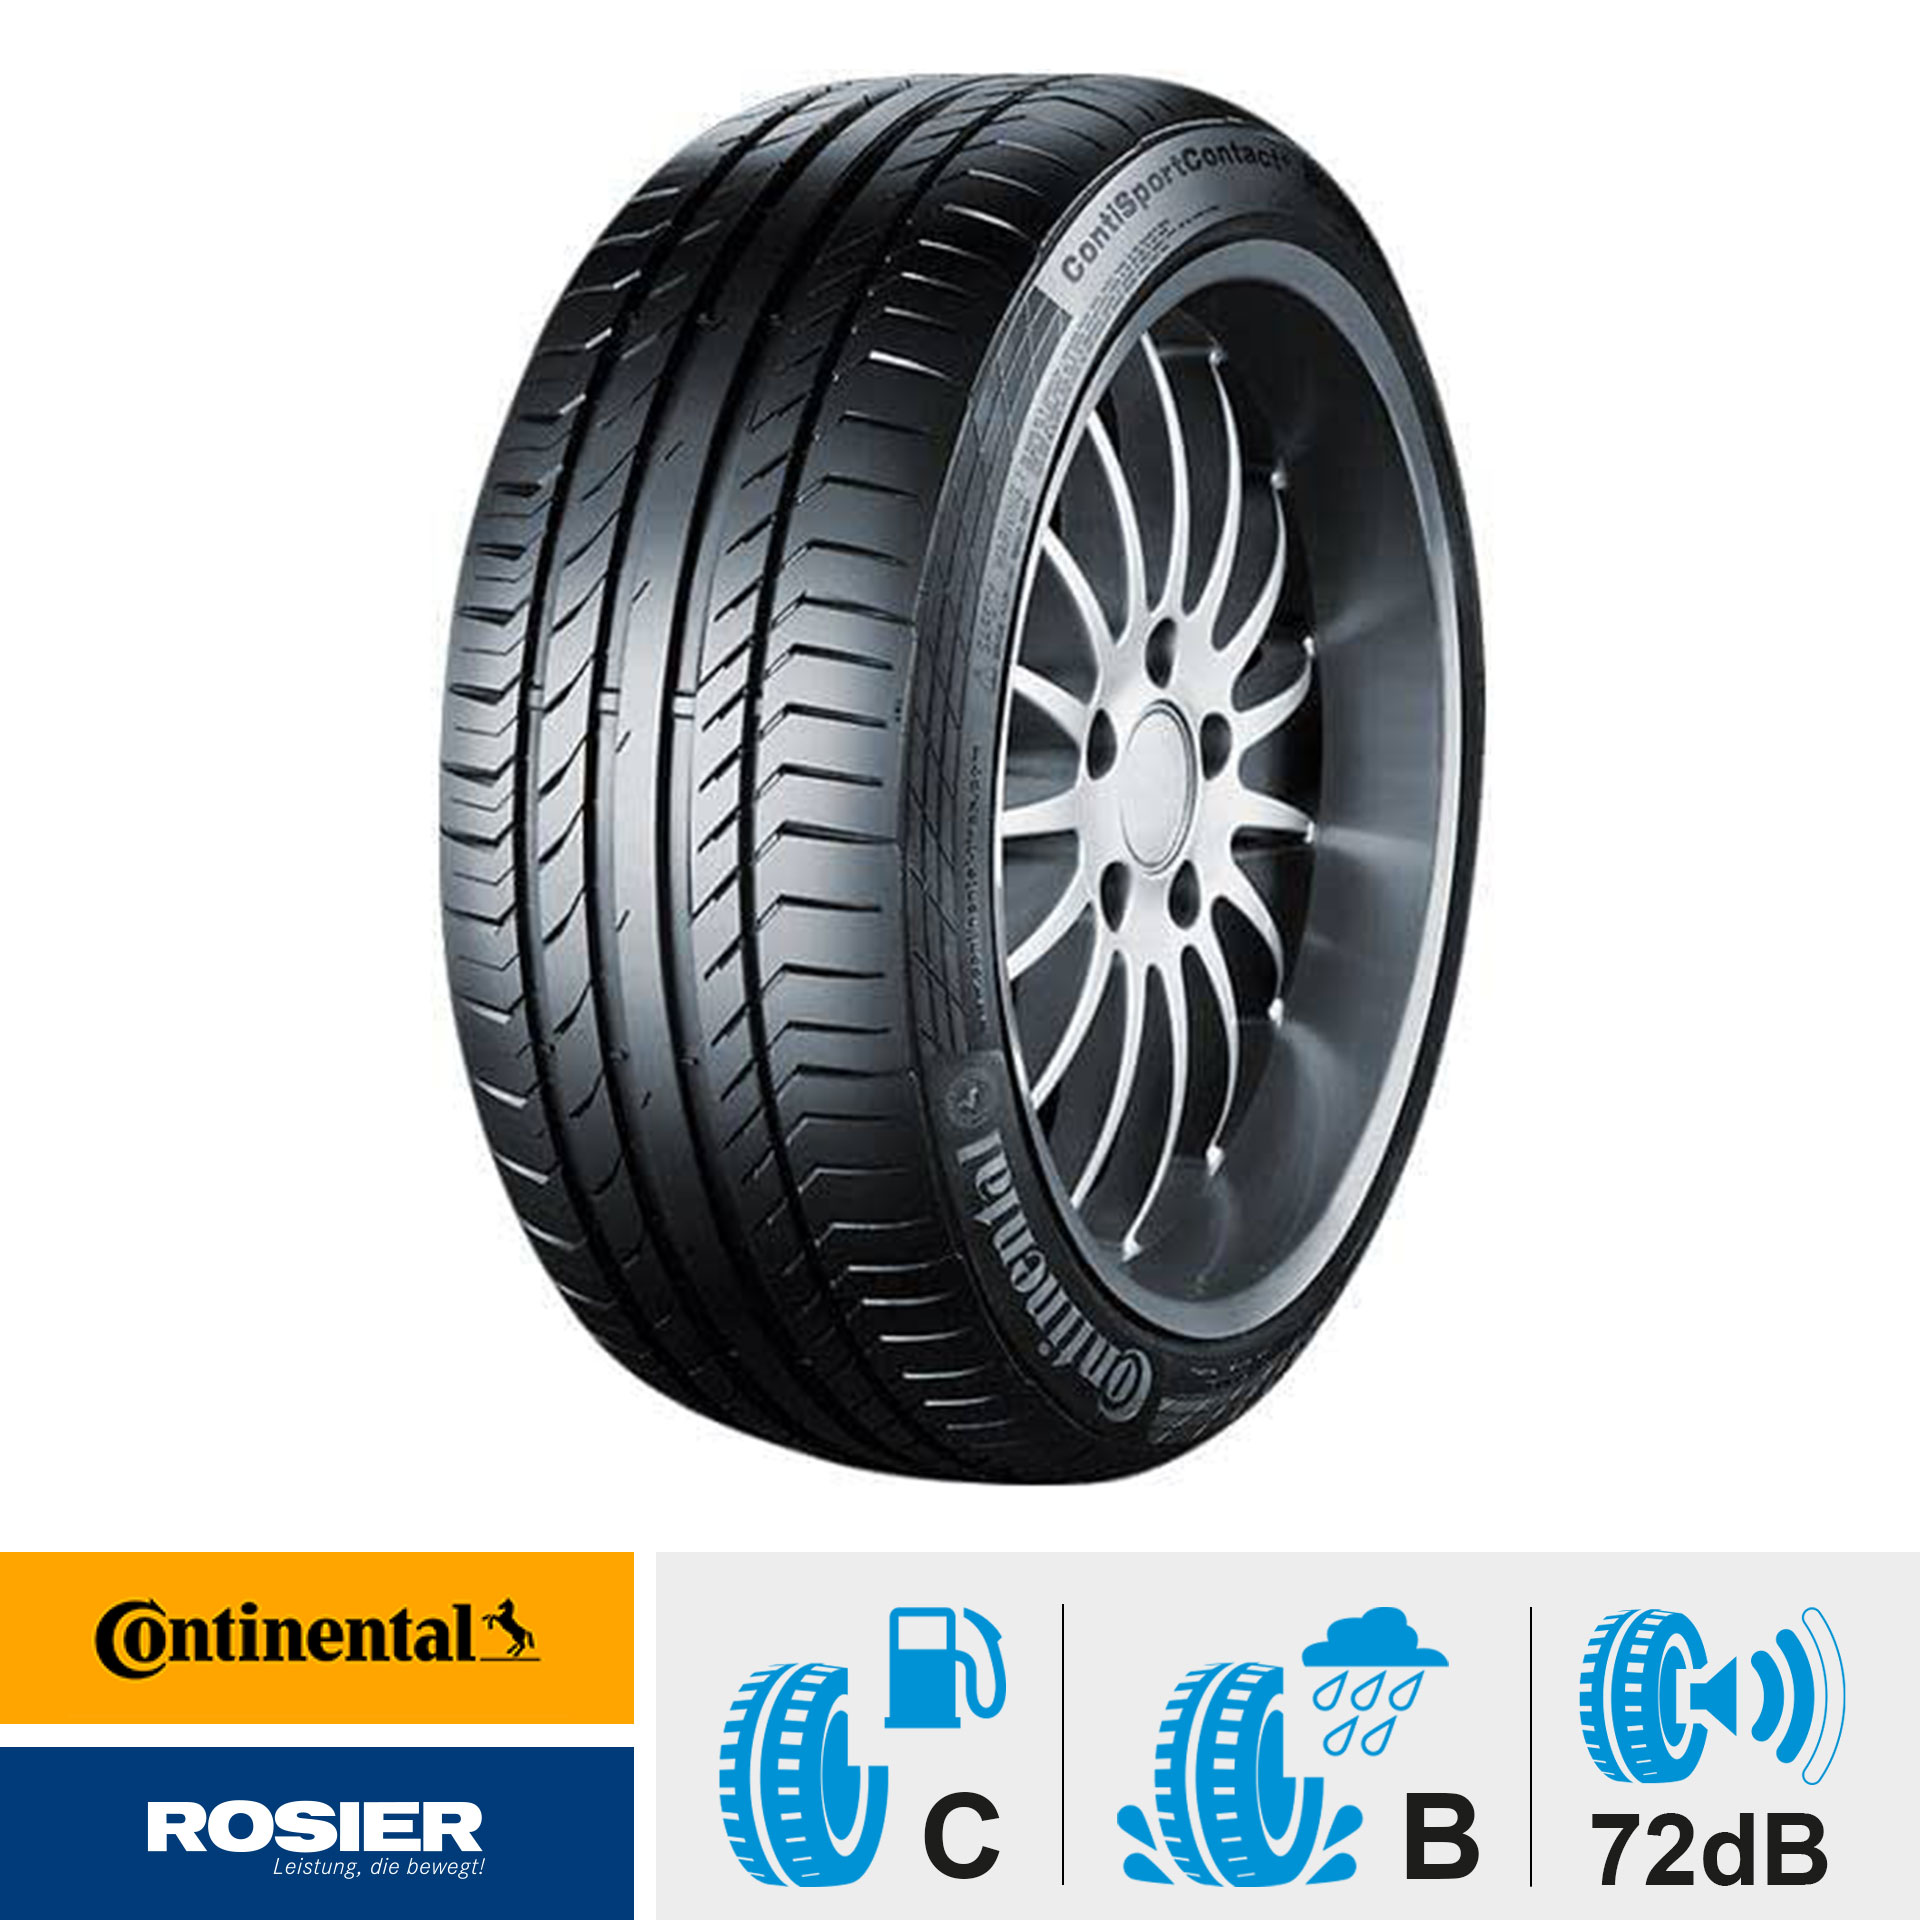 Continental SportContact 5 MO. 225/40 R18 92 Y - Sommerreifen